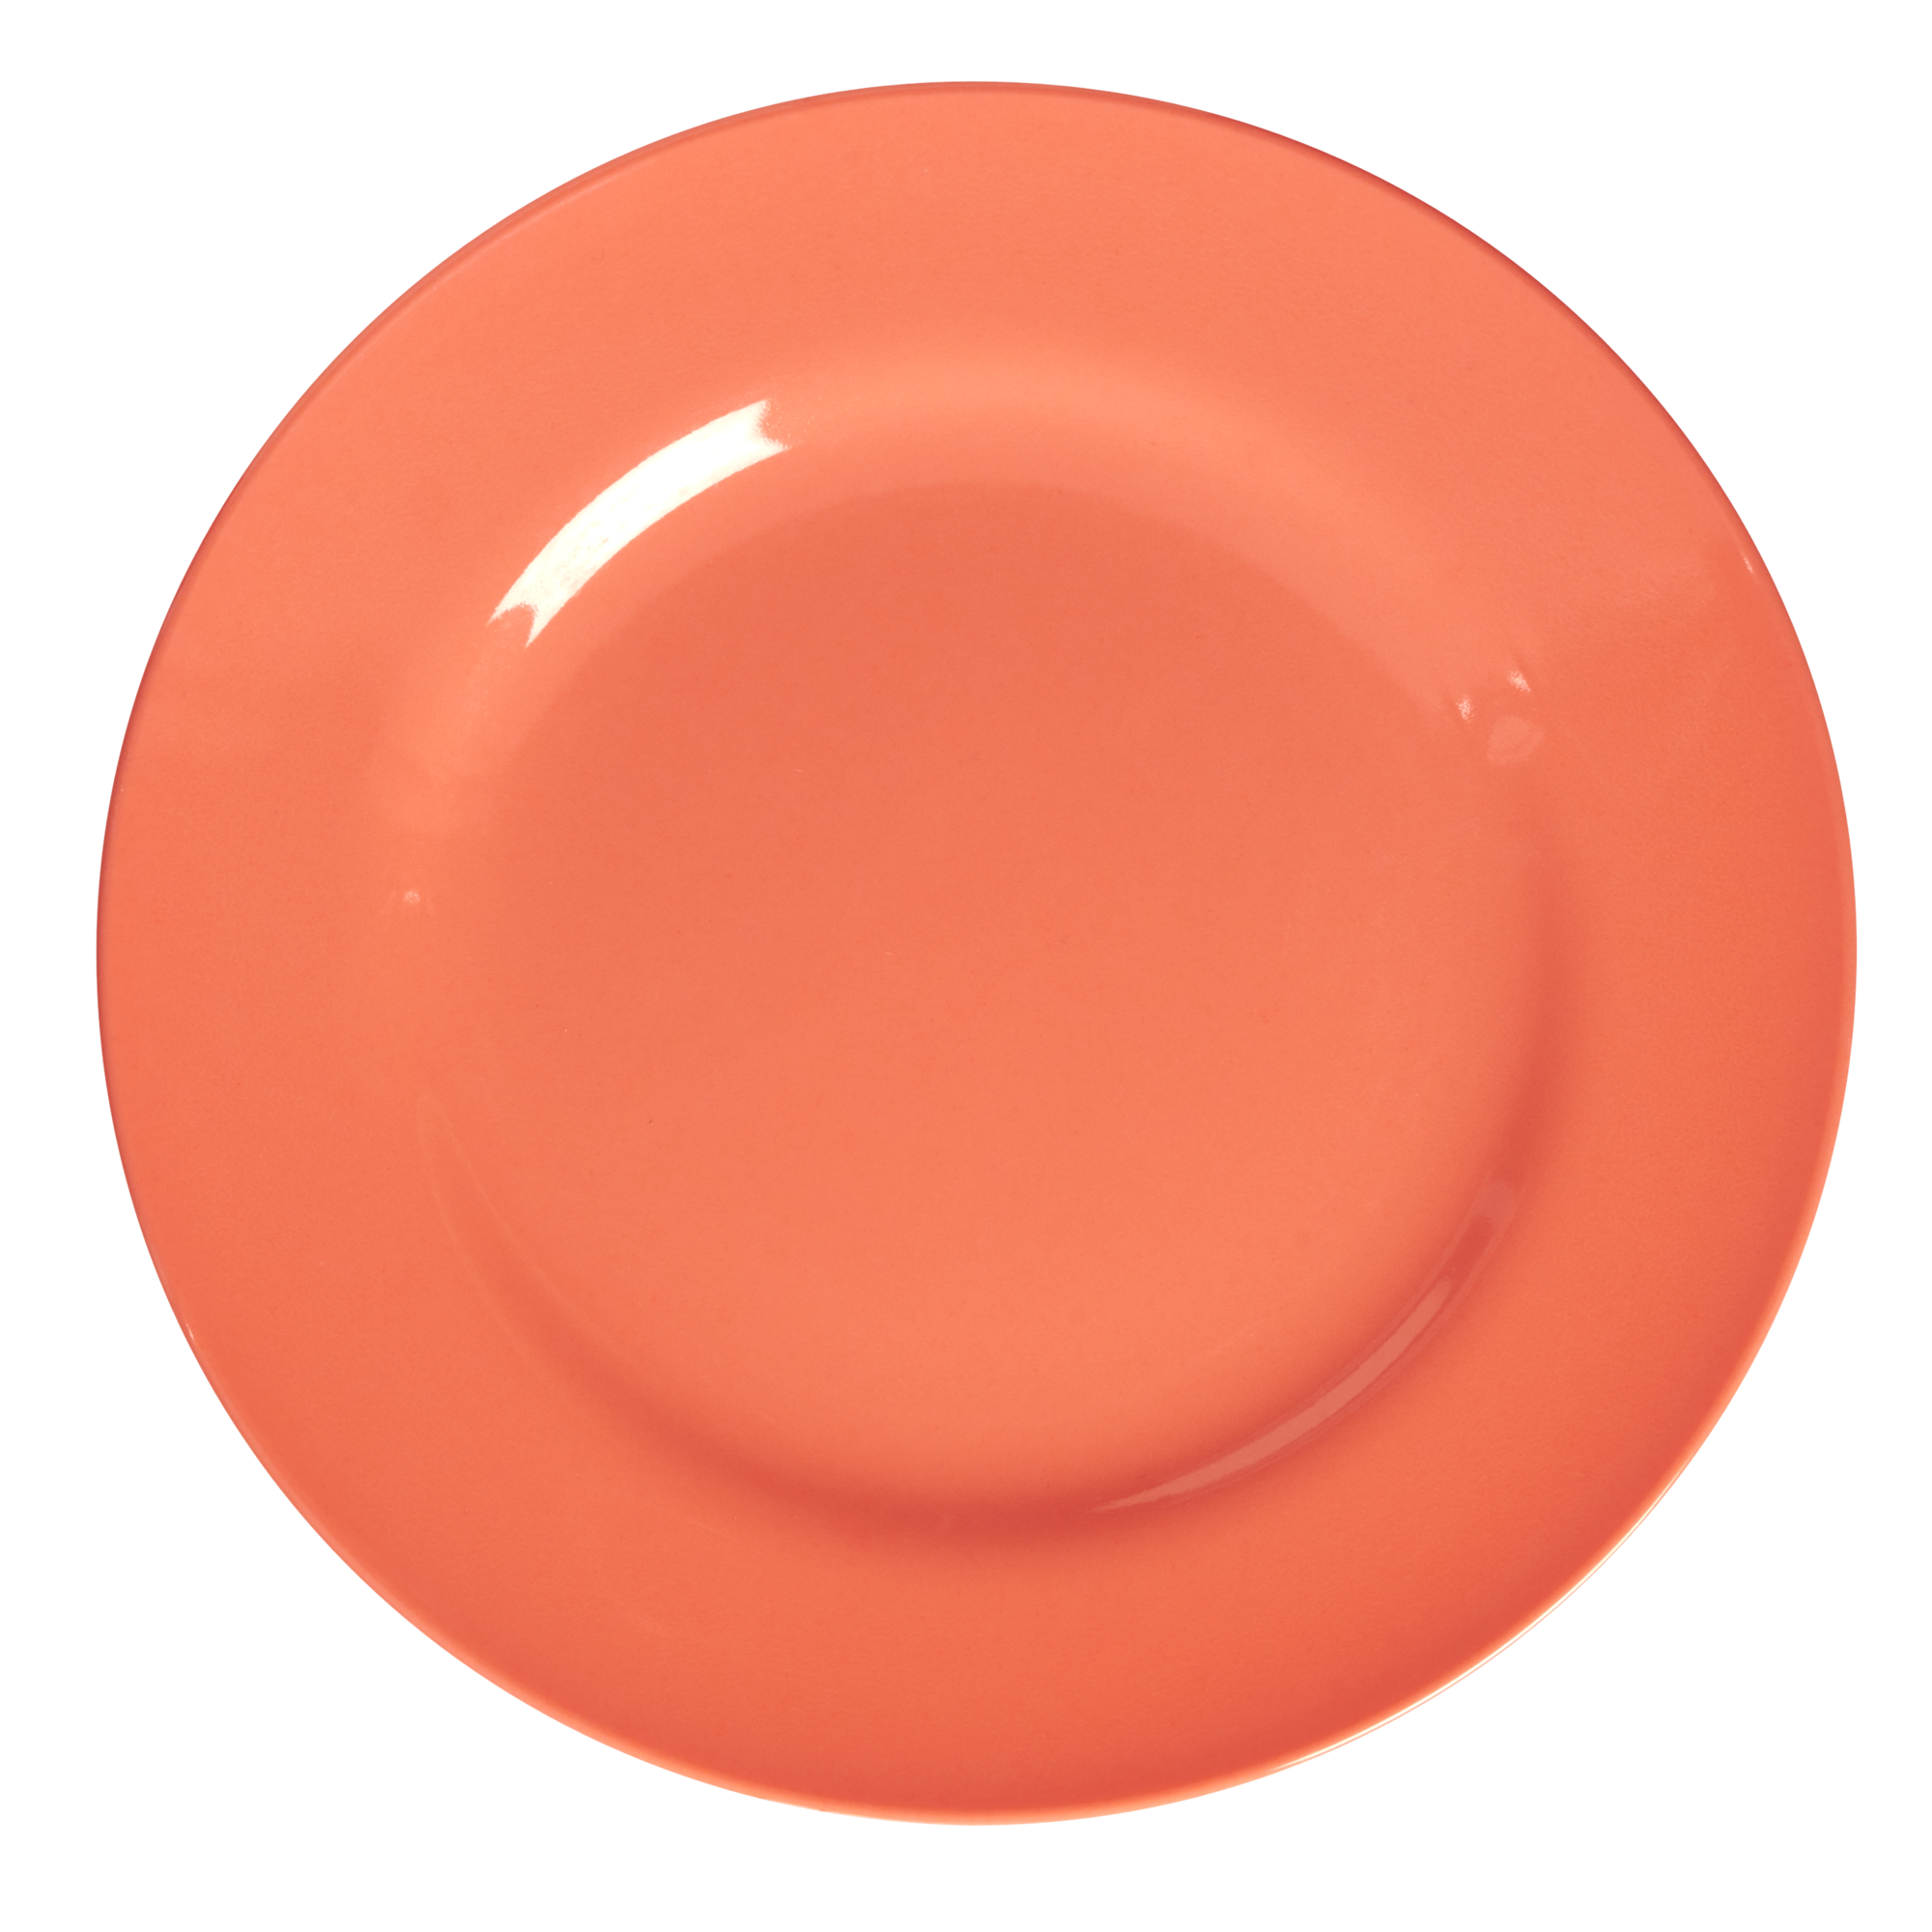 Neon Pastel Orange Melamine Dinner Plate By Rice Dk